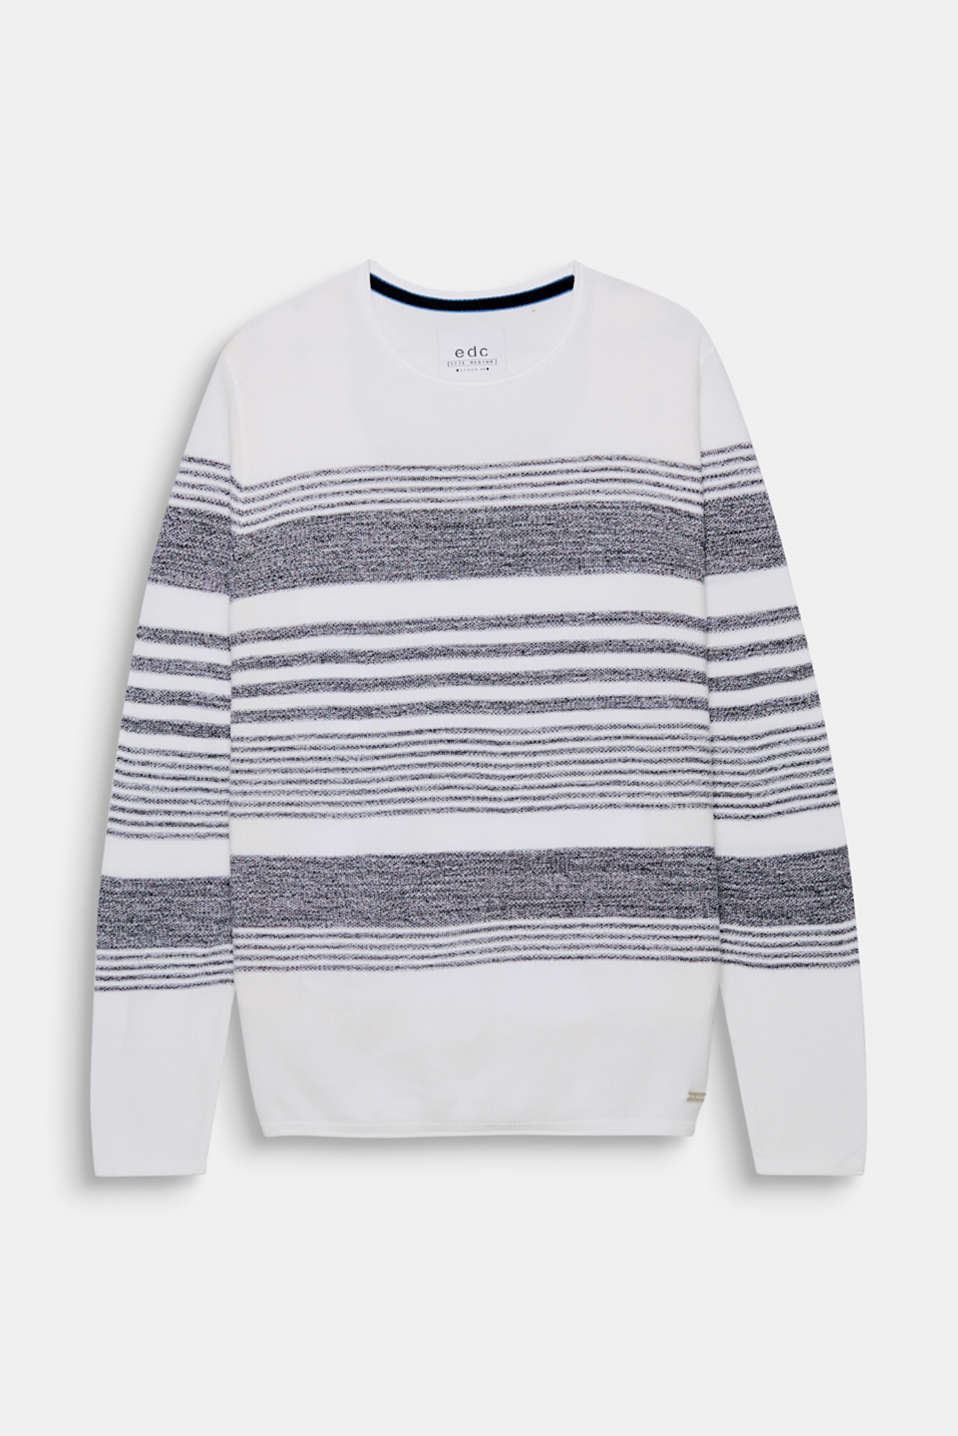 This lightweight, knitted jumper with a nautical striped look is perfect for between seasons.